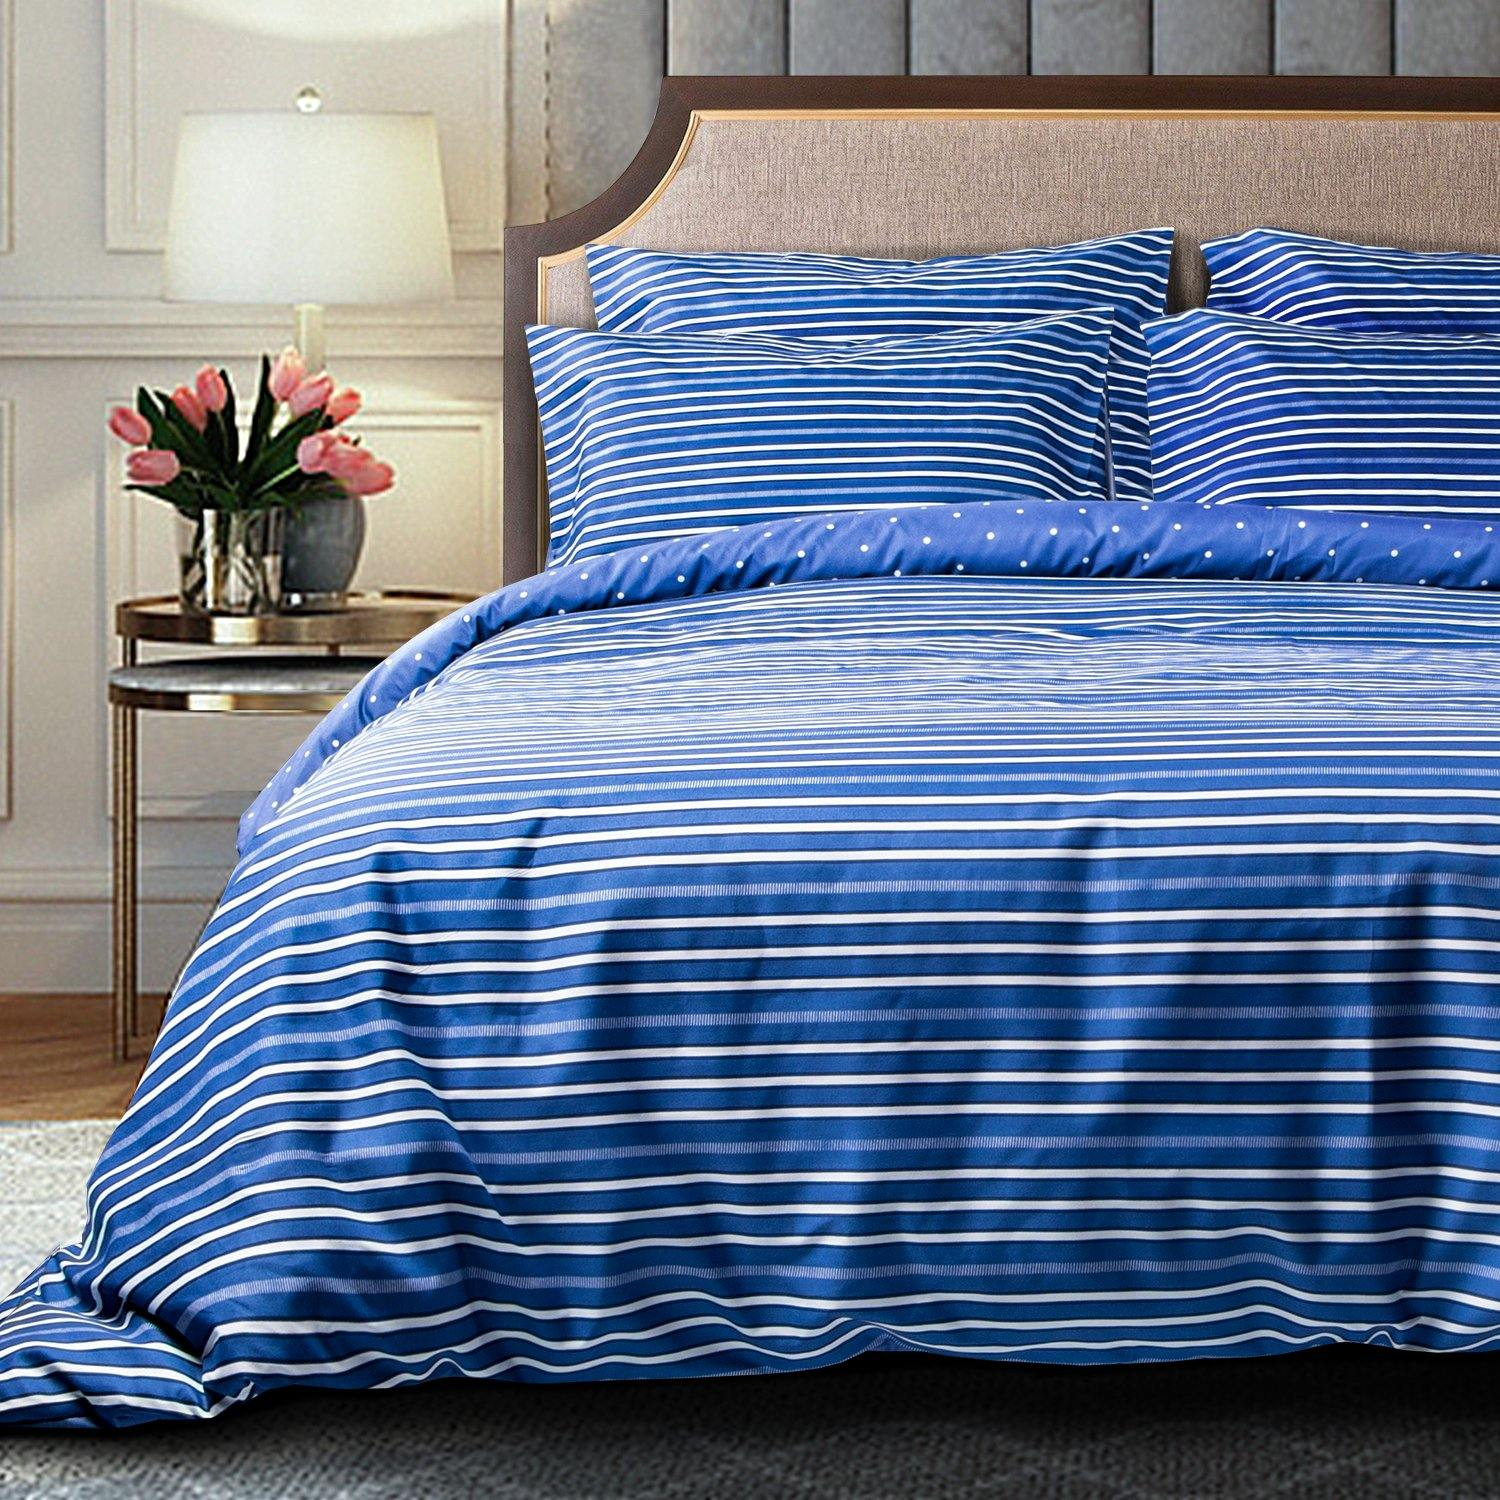 NTBAY 3 Pieces Duvet Cover Set, Brushed Microfiber, Blue and White Striped Printed Reversible Design - NTBAY